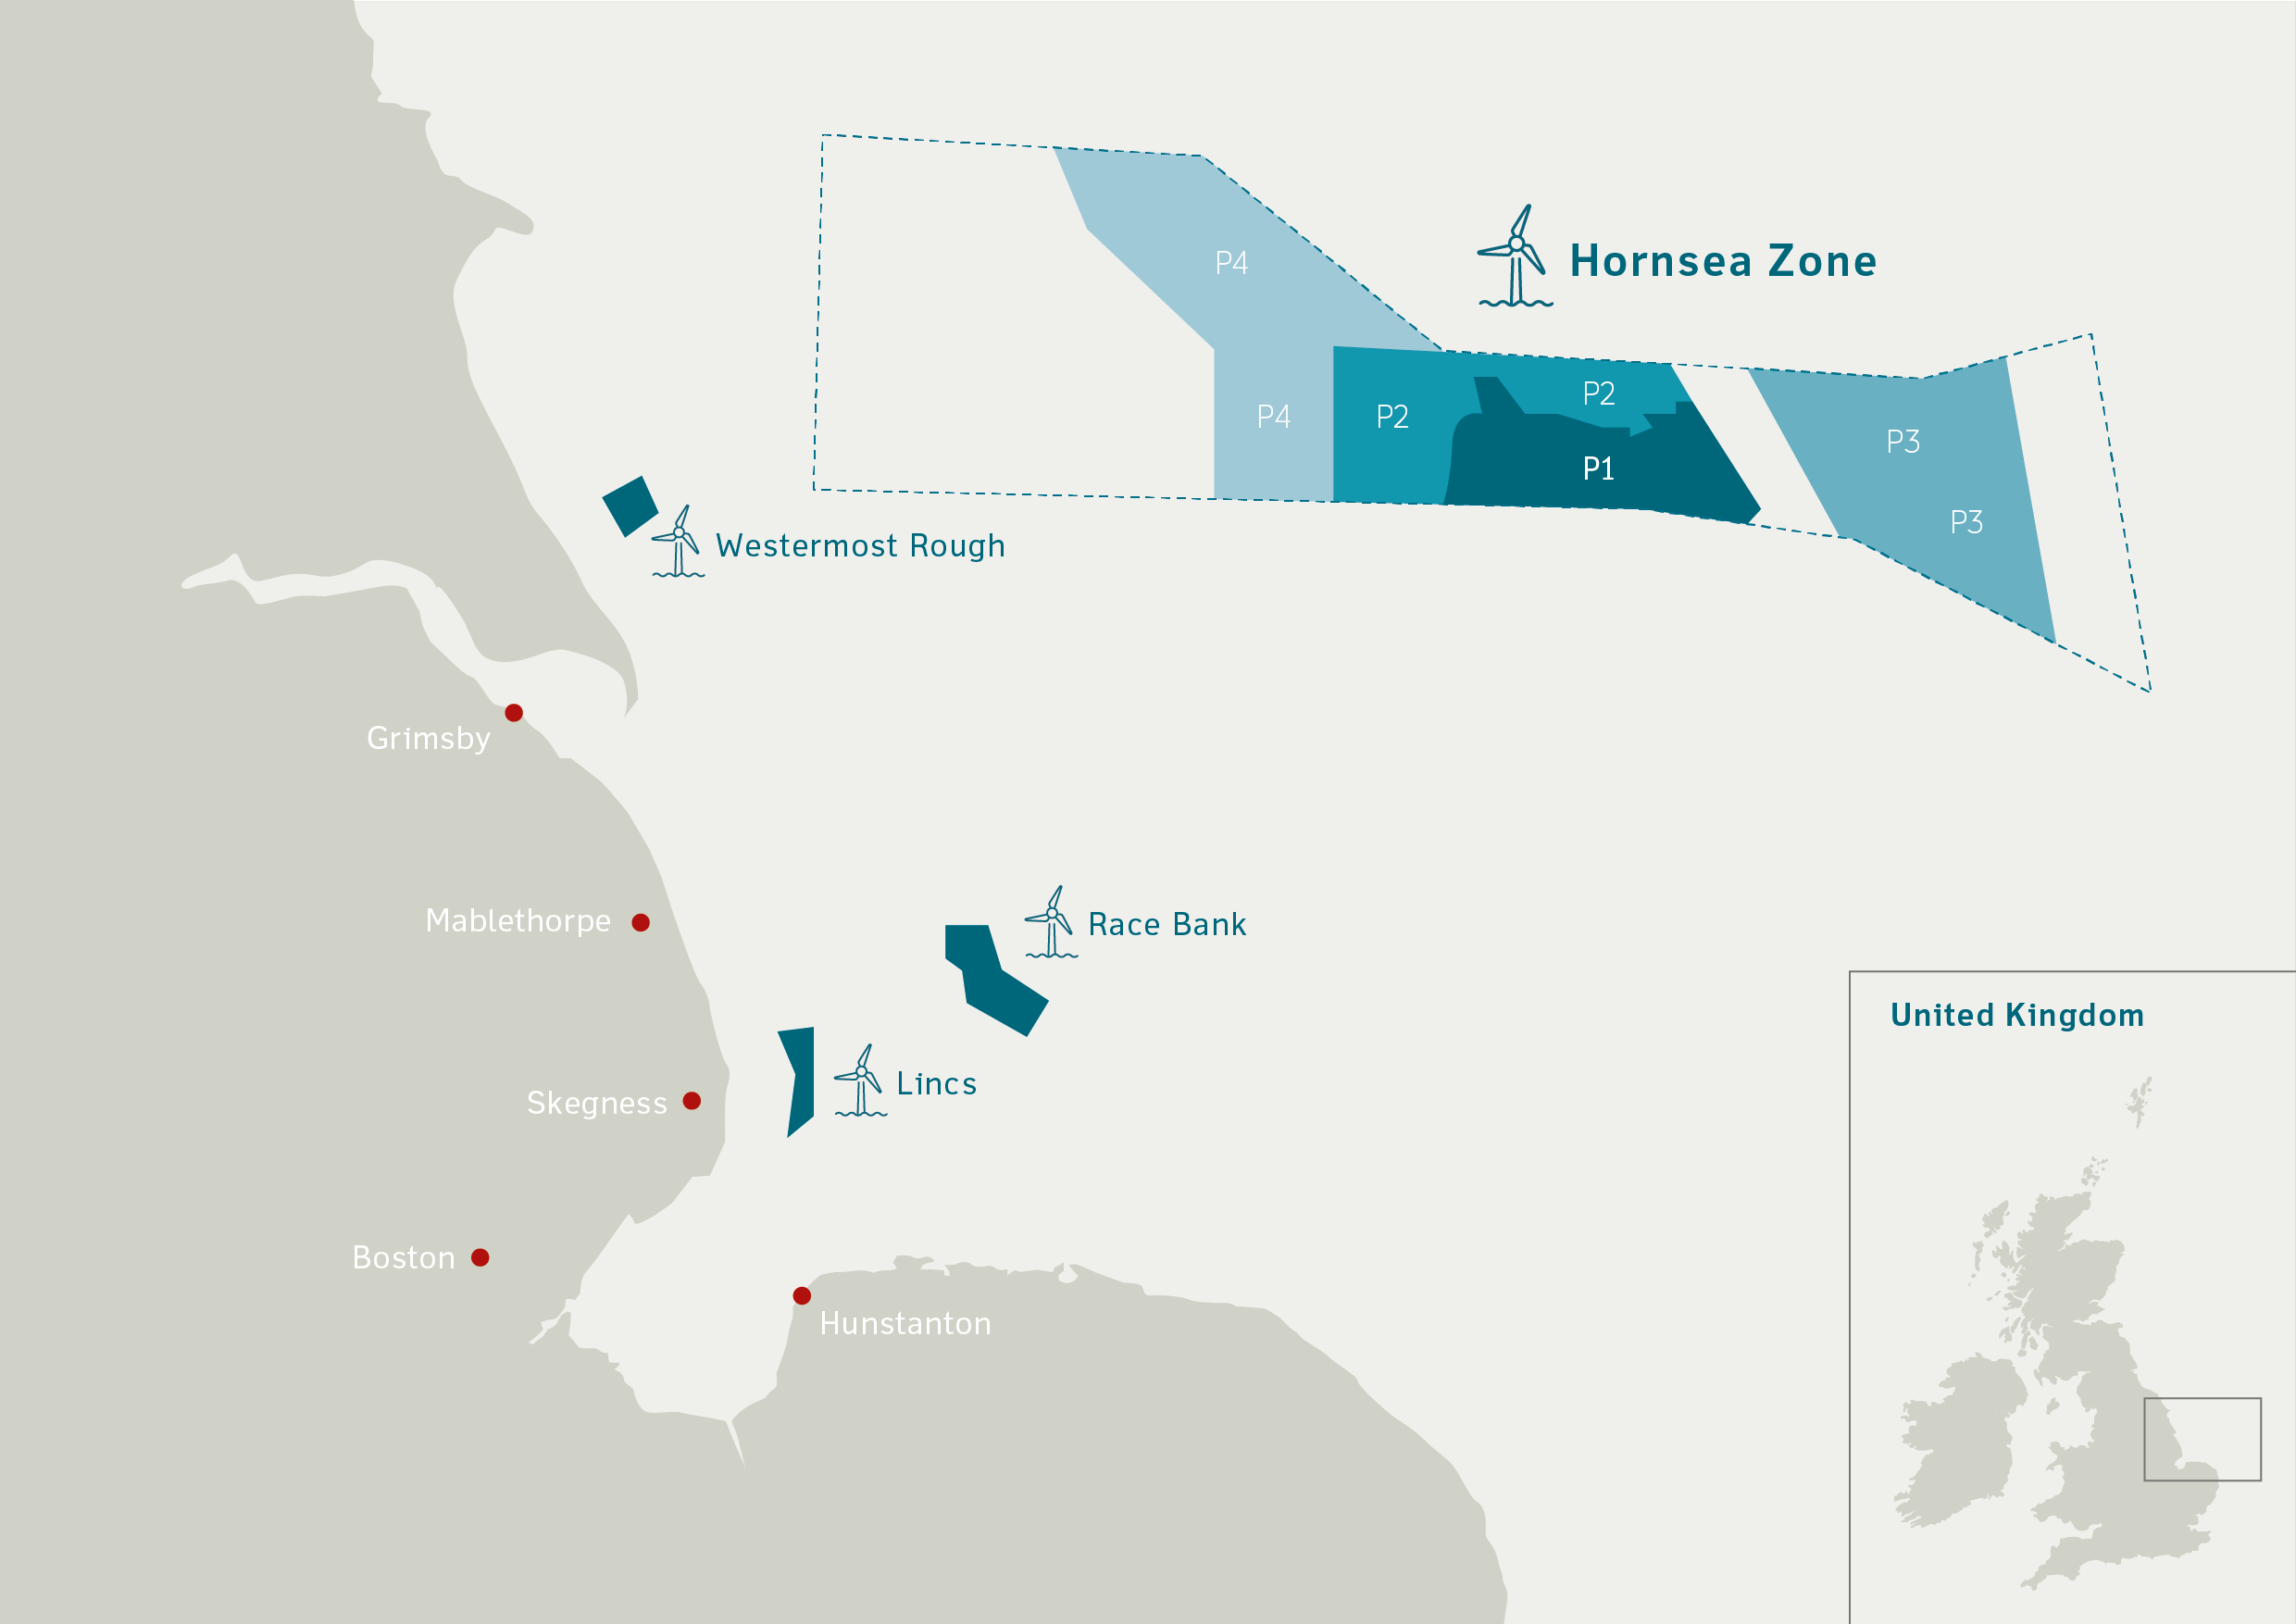 hornsea DONG Energy To Reconfigure Hornsea Offshore Wind Development Zones